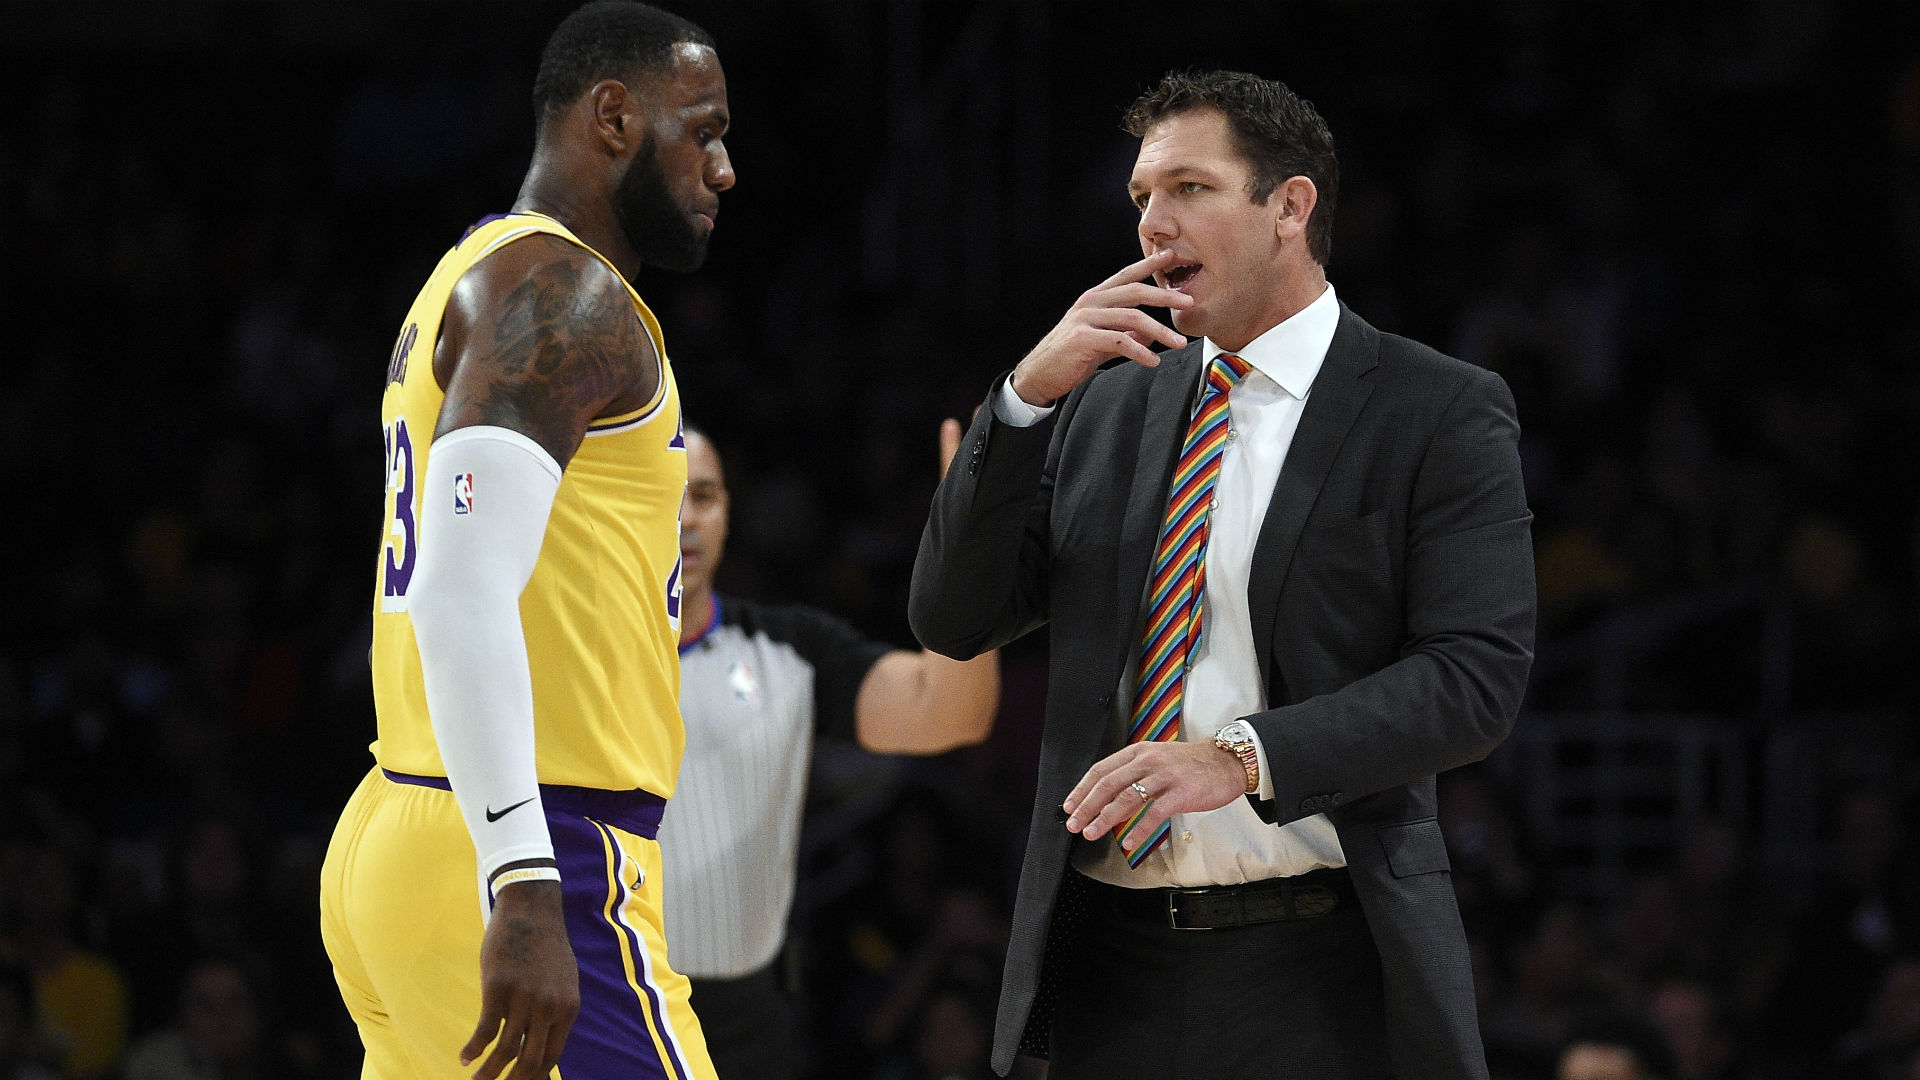 Lakers coach Luke Walton will monitor LeBron James' minutes, plans to use deep rotation